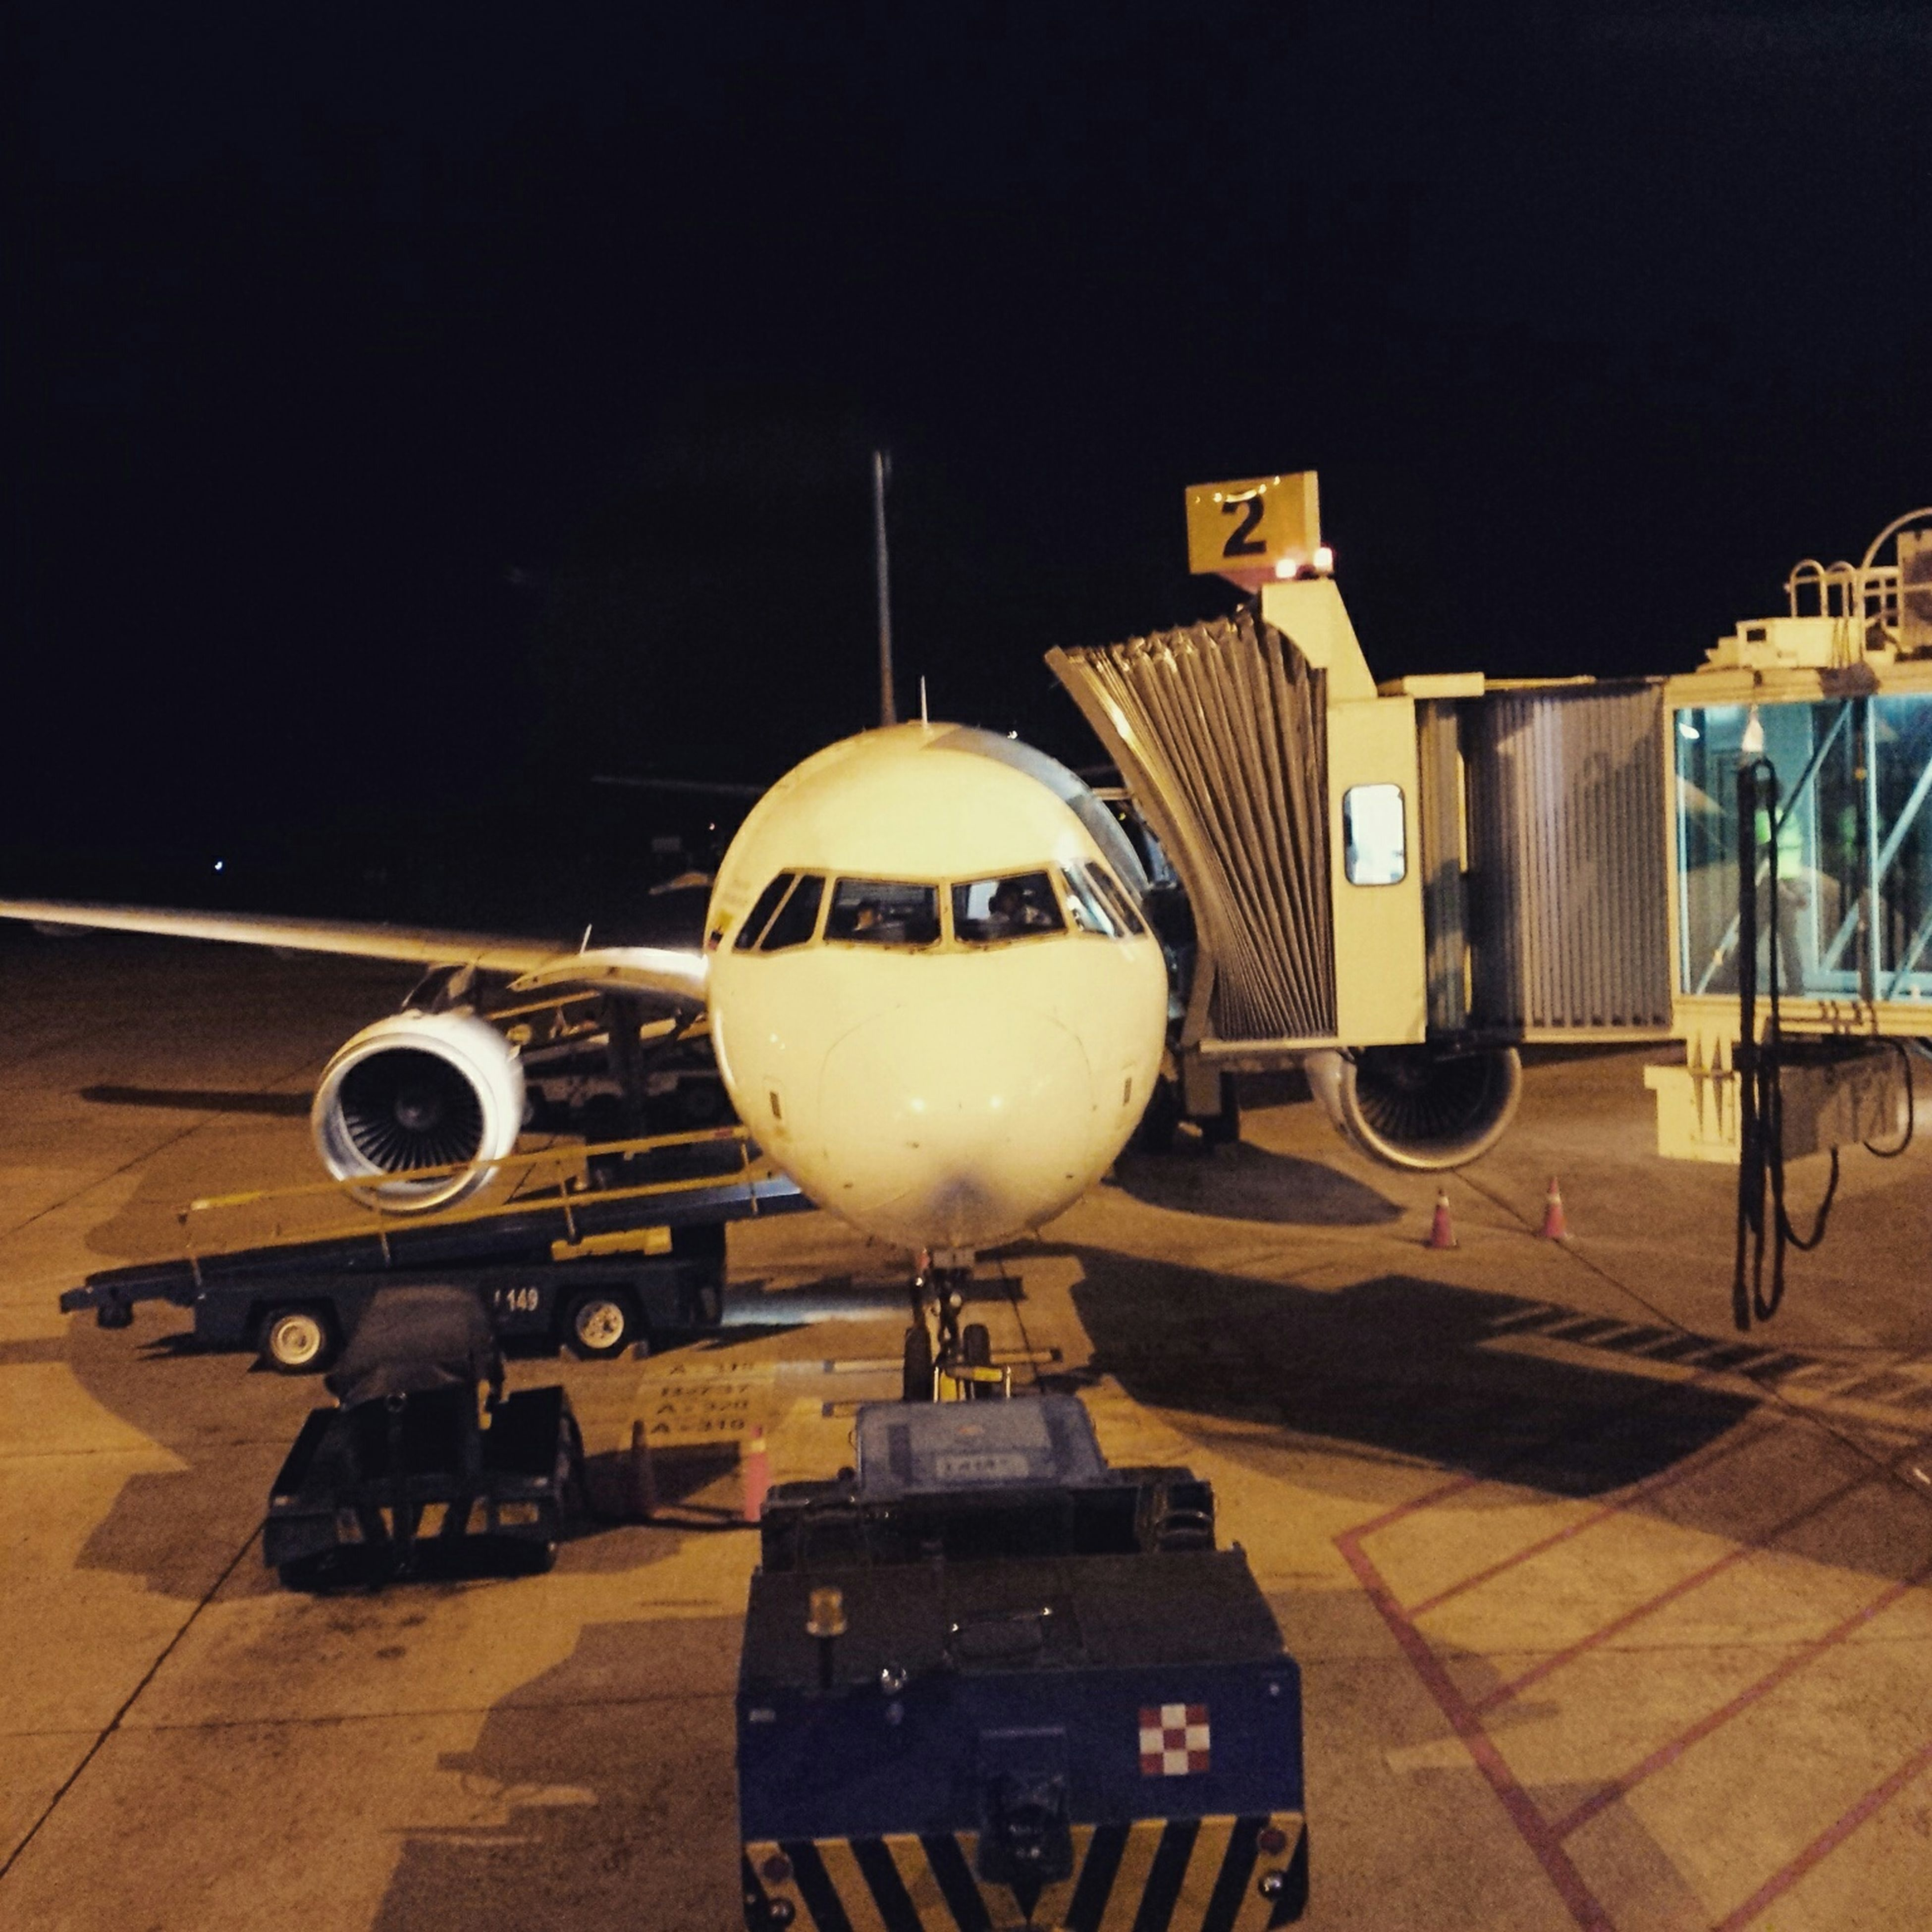 illuminated, night, architecture, transportation, built structure, lighting equipment, building exterior, city, airport, indoors, no people, copy space, modern, mode of transport, street, travel, street light, airplane, clear sky